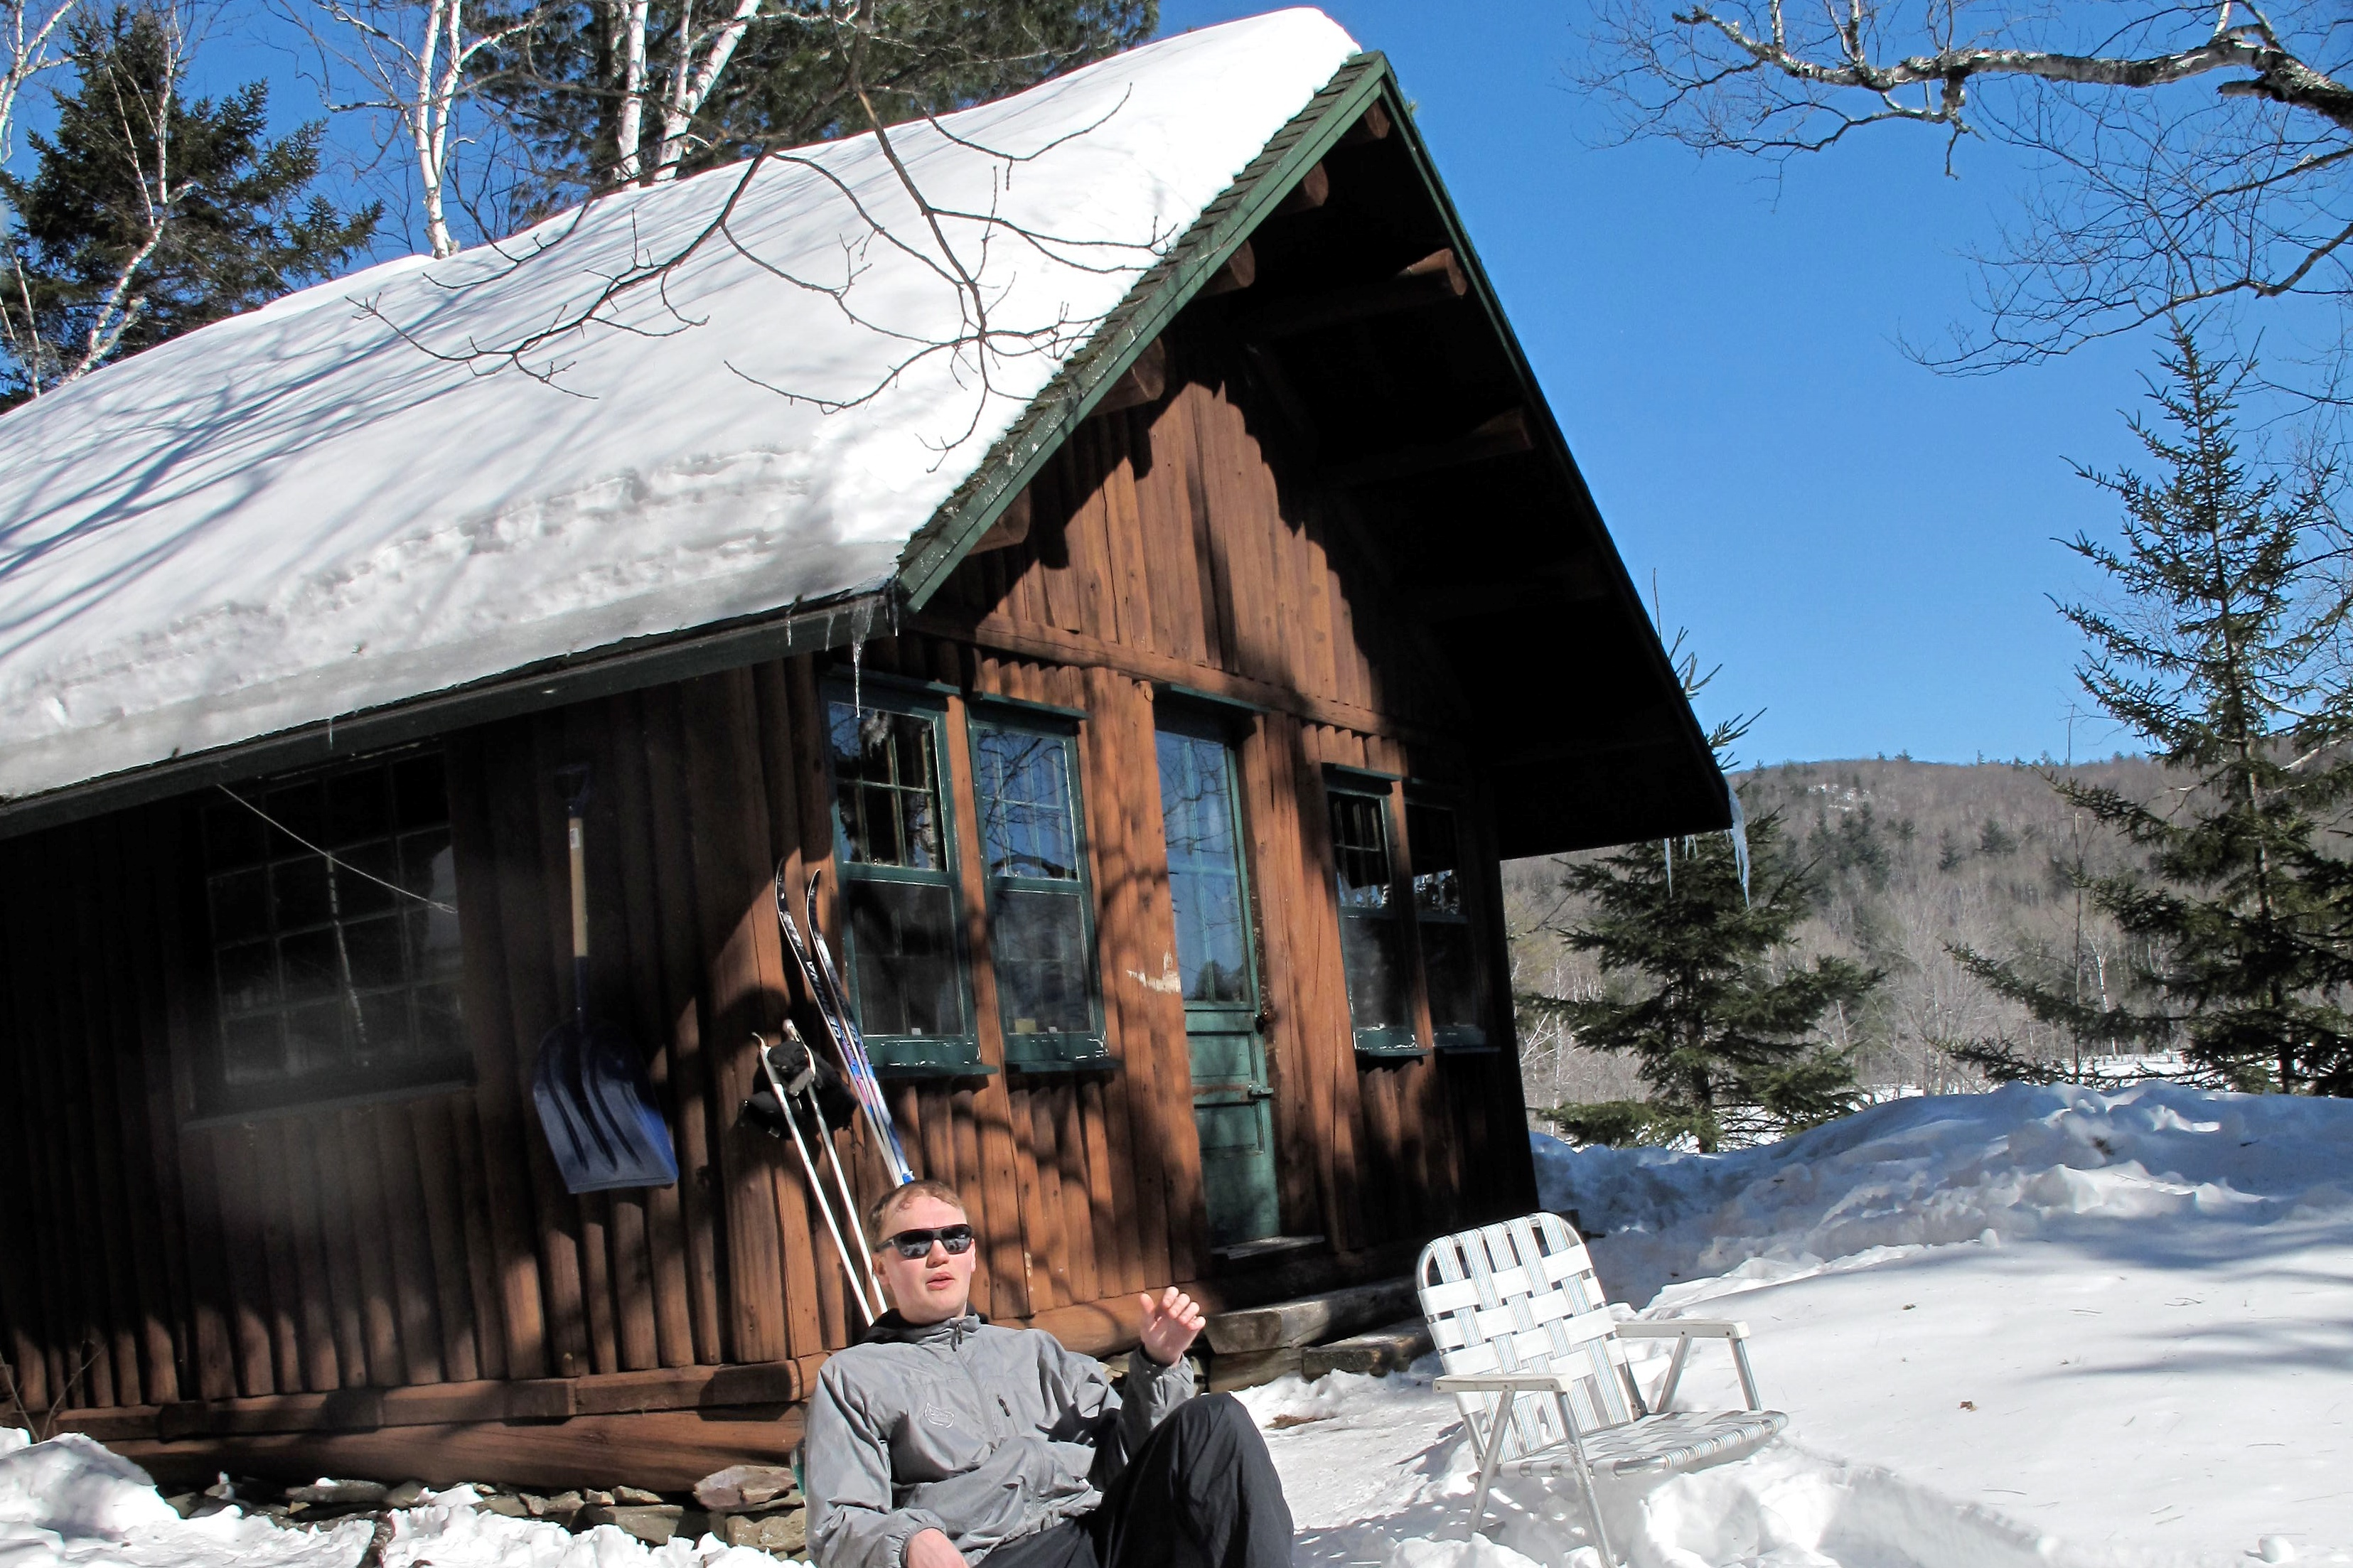 Man sitting in a chair in front of a wooden hut in the snow.